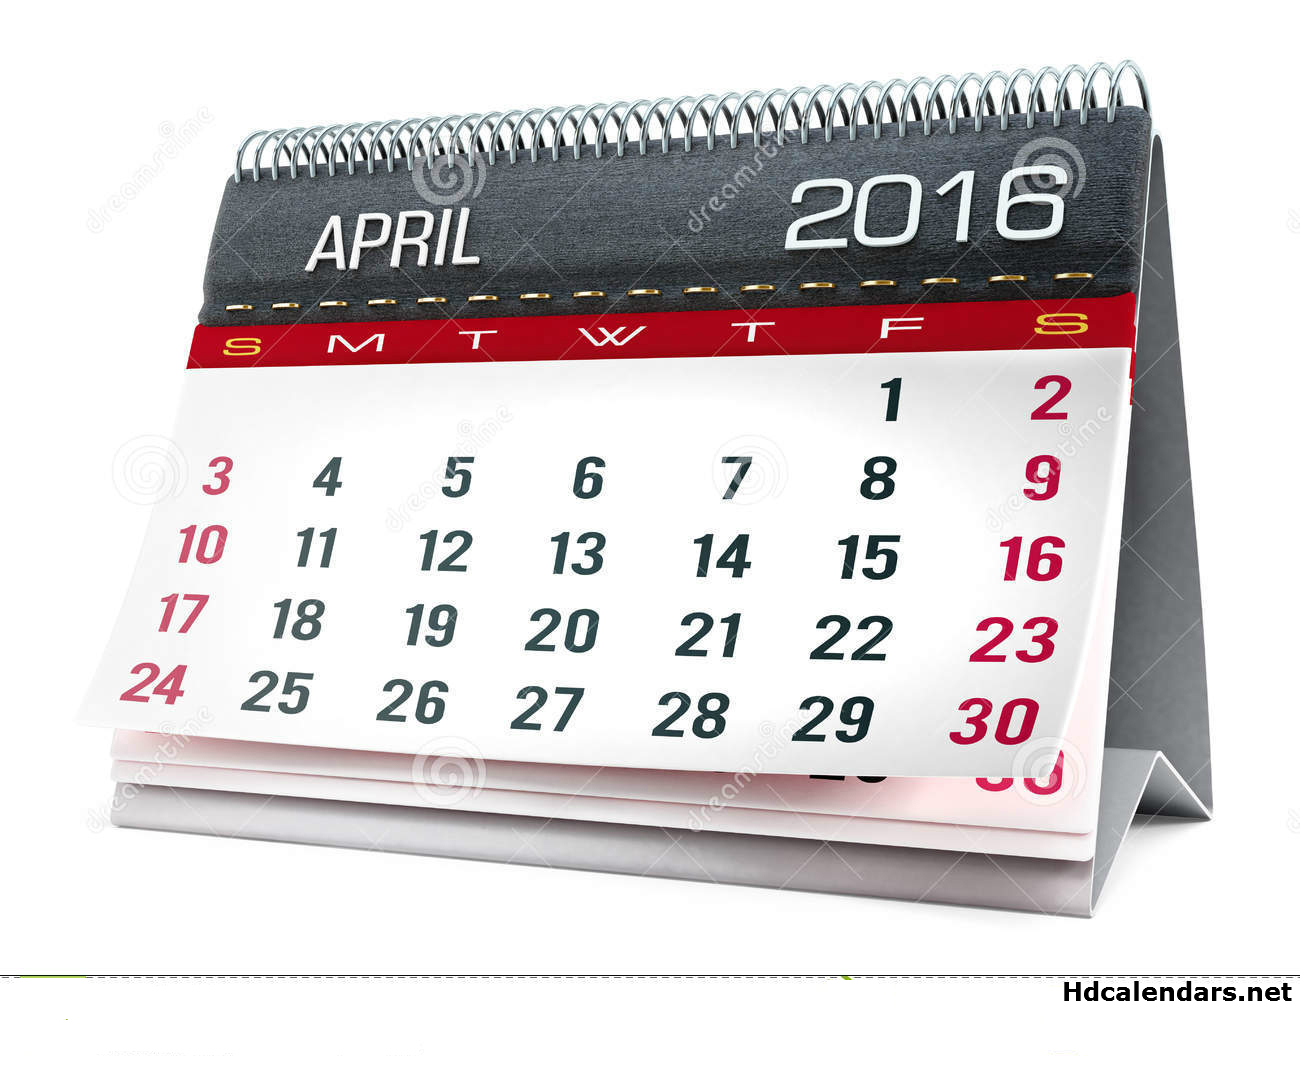 April 2016 calendar clipart. New zealand printable